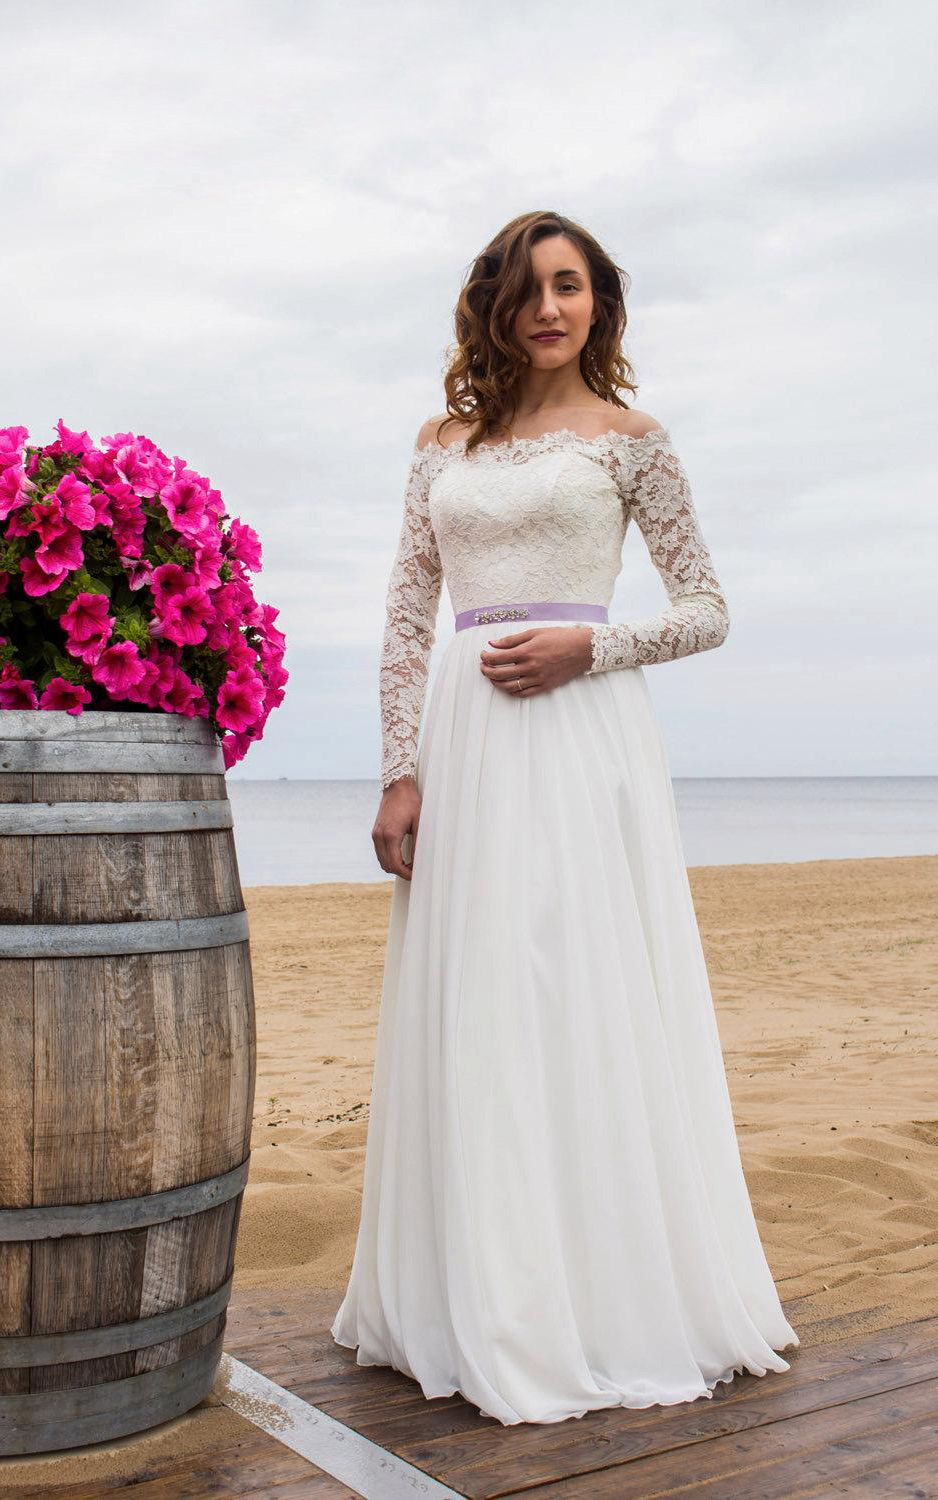 Off The Shoulder Long Sleeve Lace And Chiffon Dress With Bow Sash Long Sleeve Bridal Dresses A Line Bridal Gowns Wedding Dresses Simple [ 1500 x 938 Pixel ]